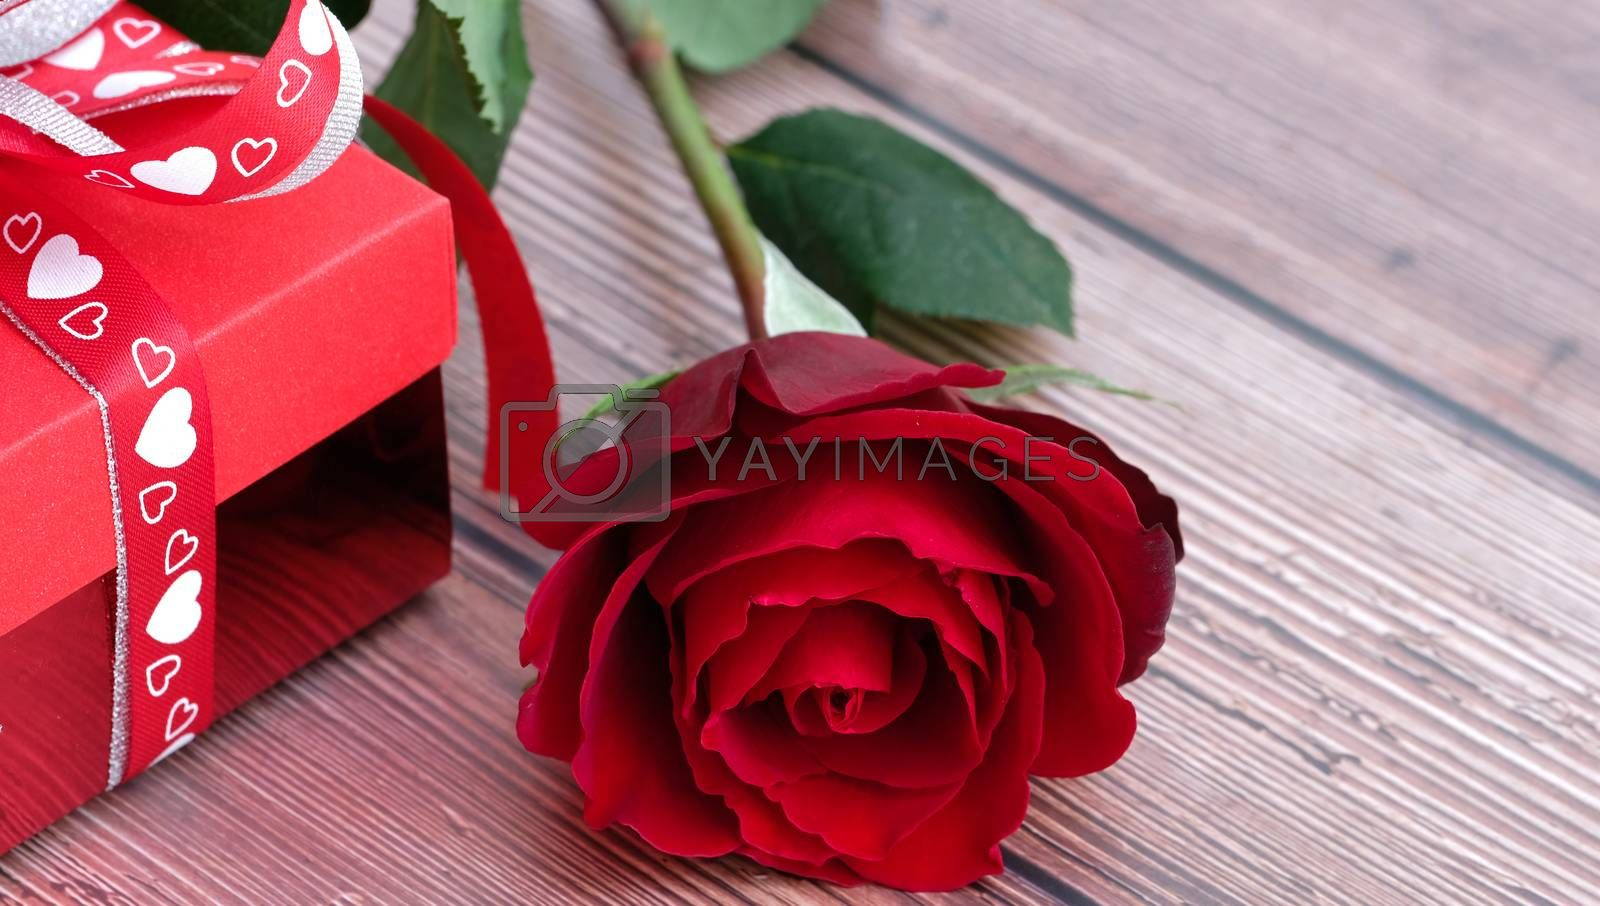 Blooming beautiful red rose and red present box  by Nawoot